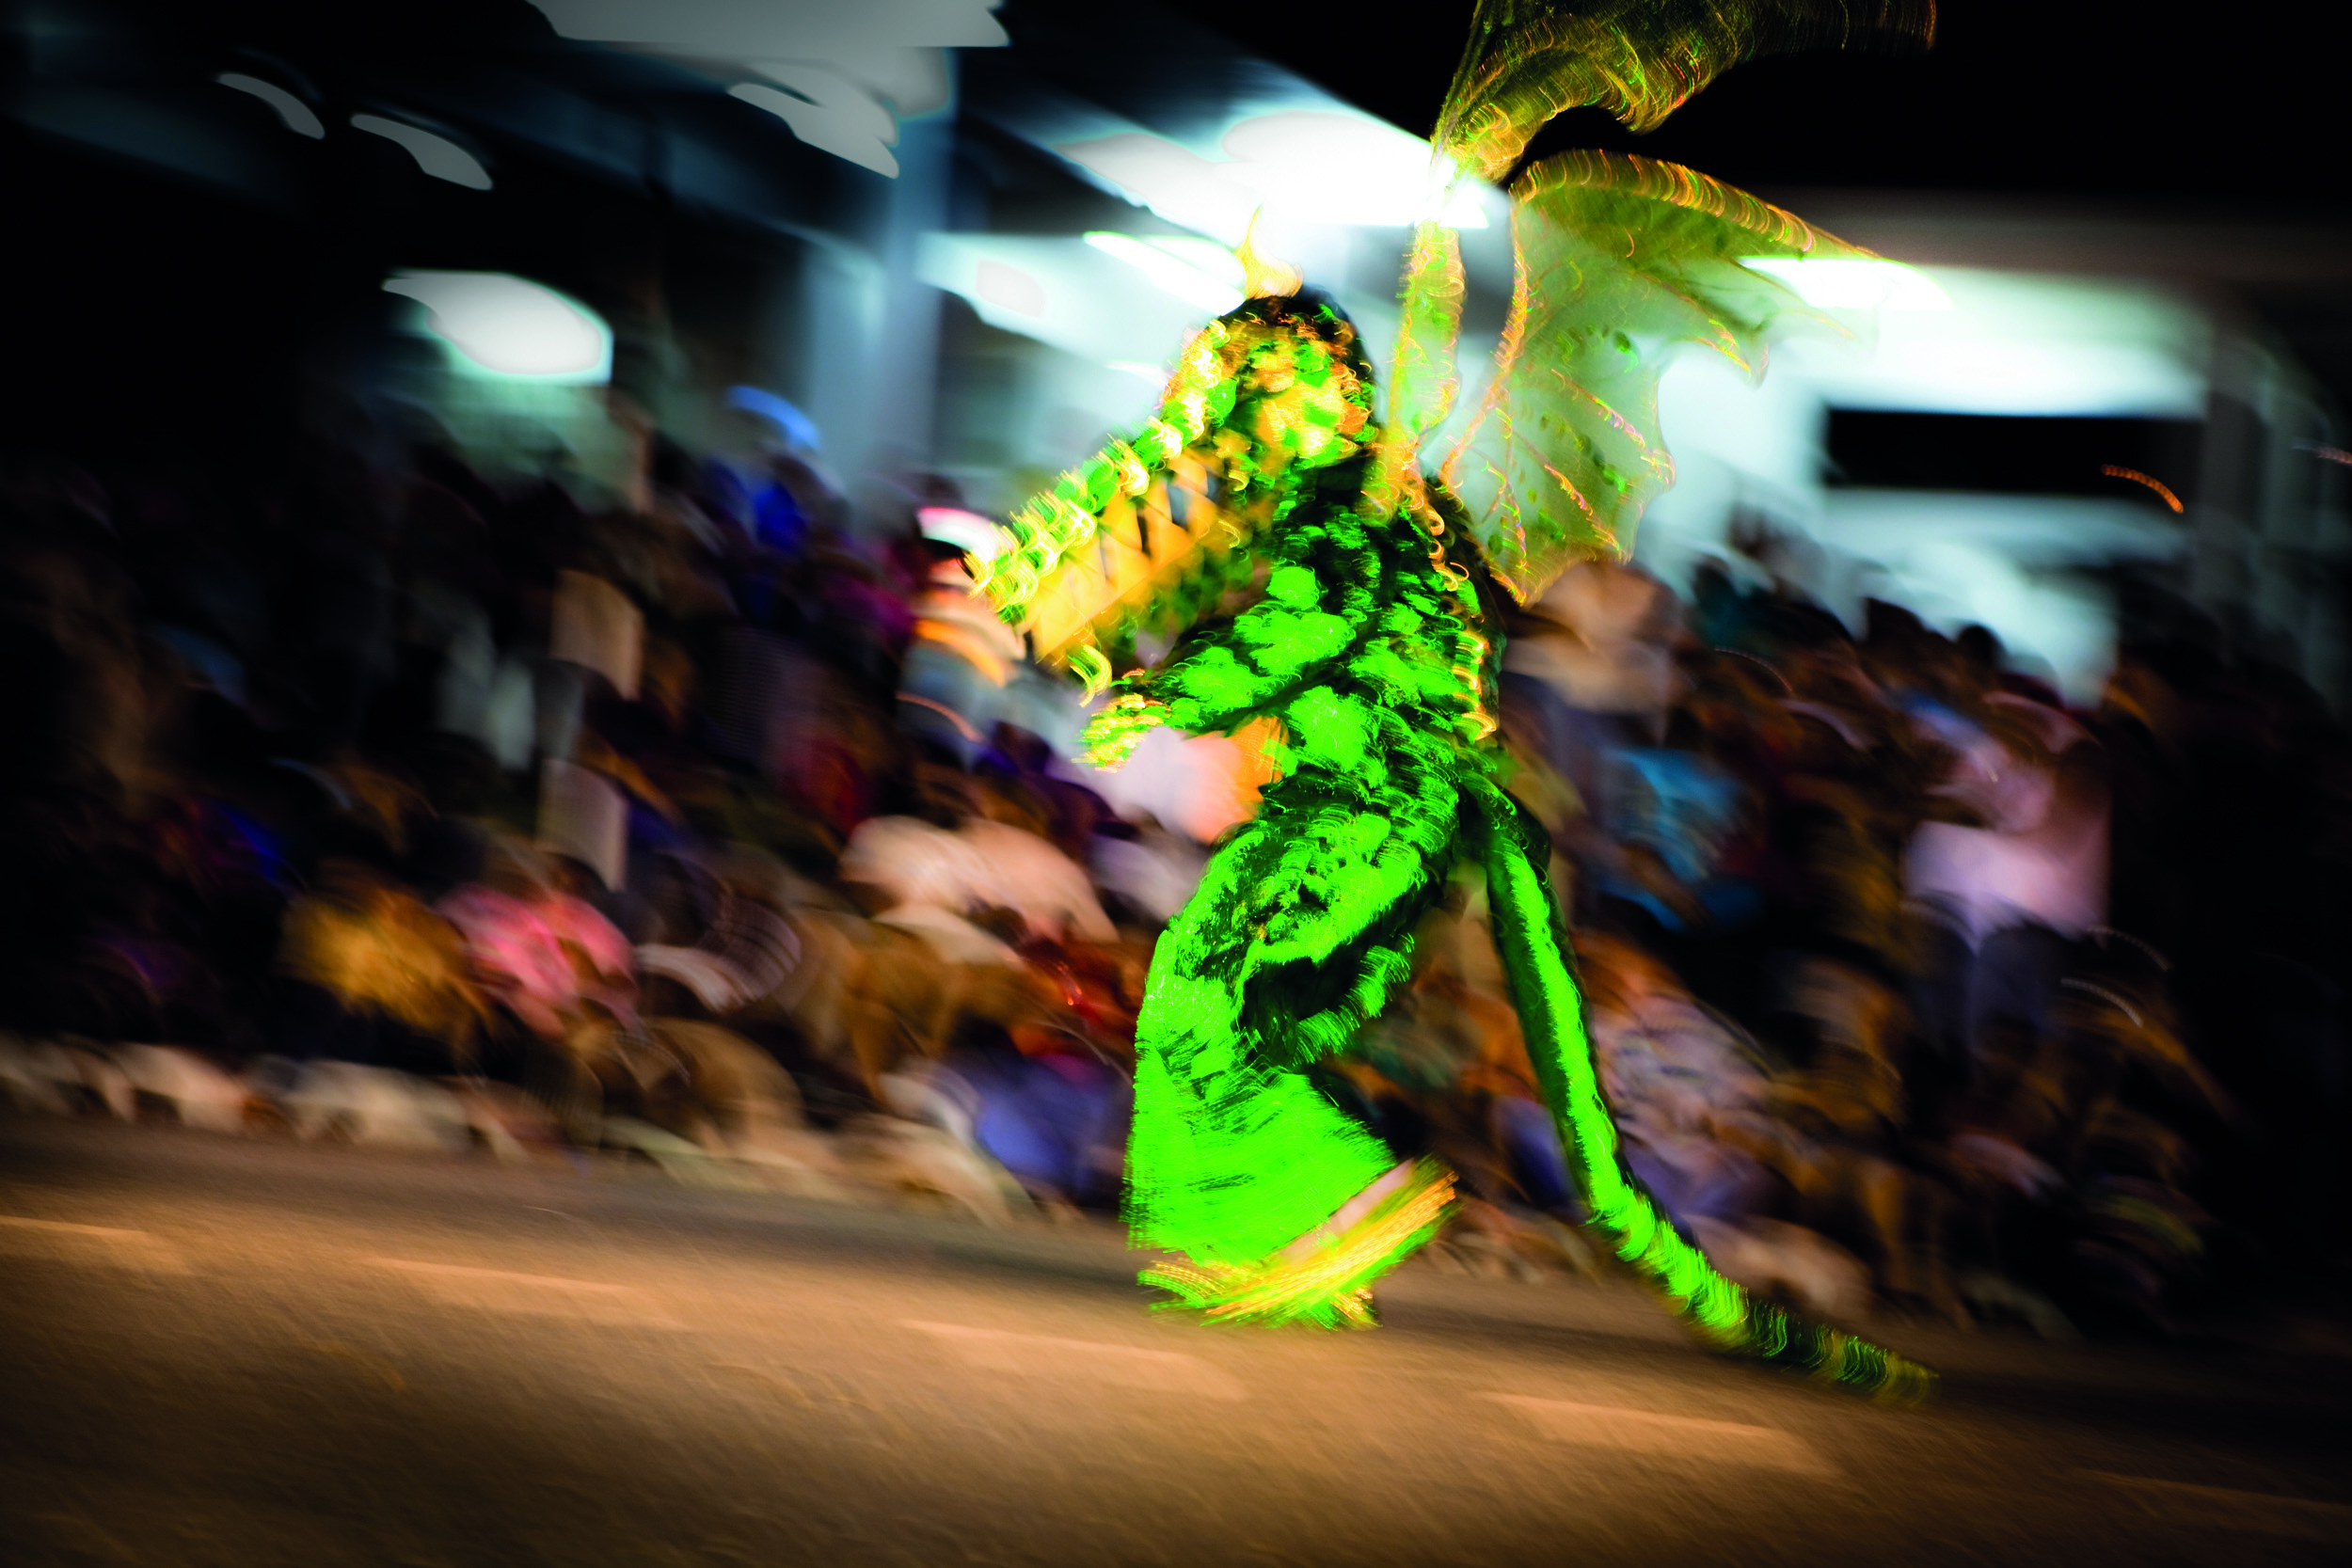 Dancing Green Dragon [credit: Maria Nunes Photography]